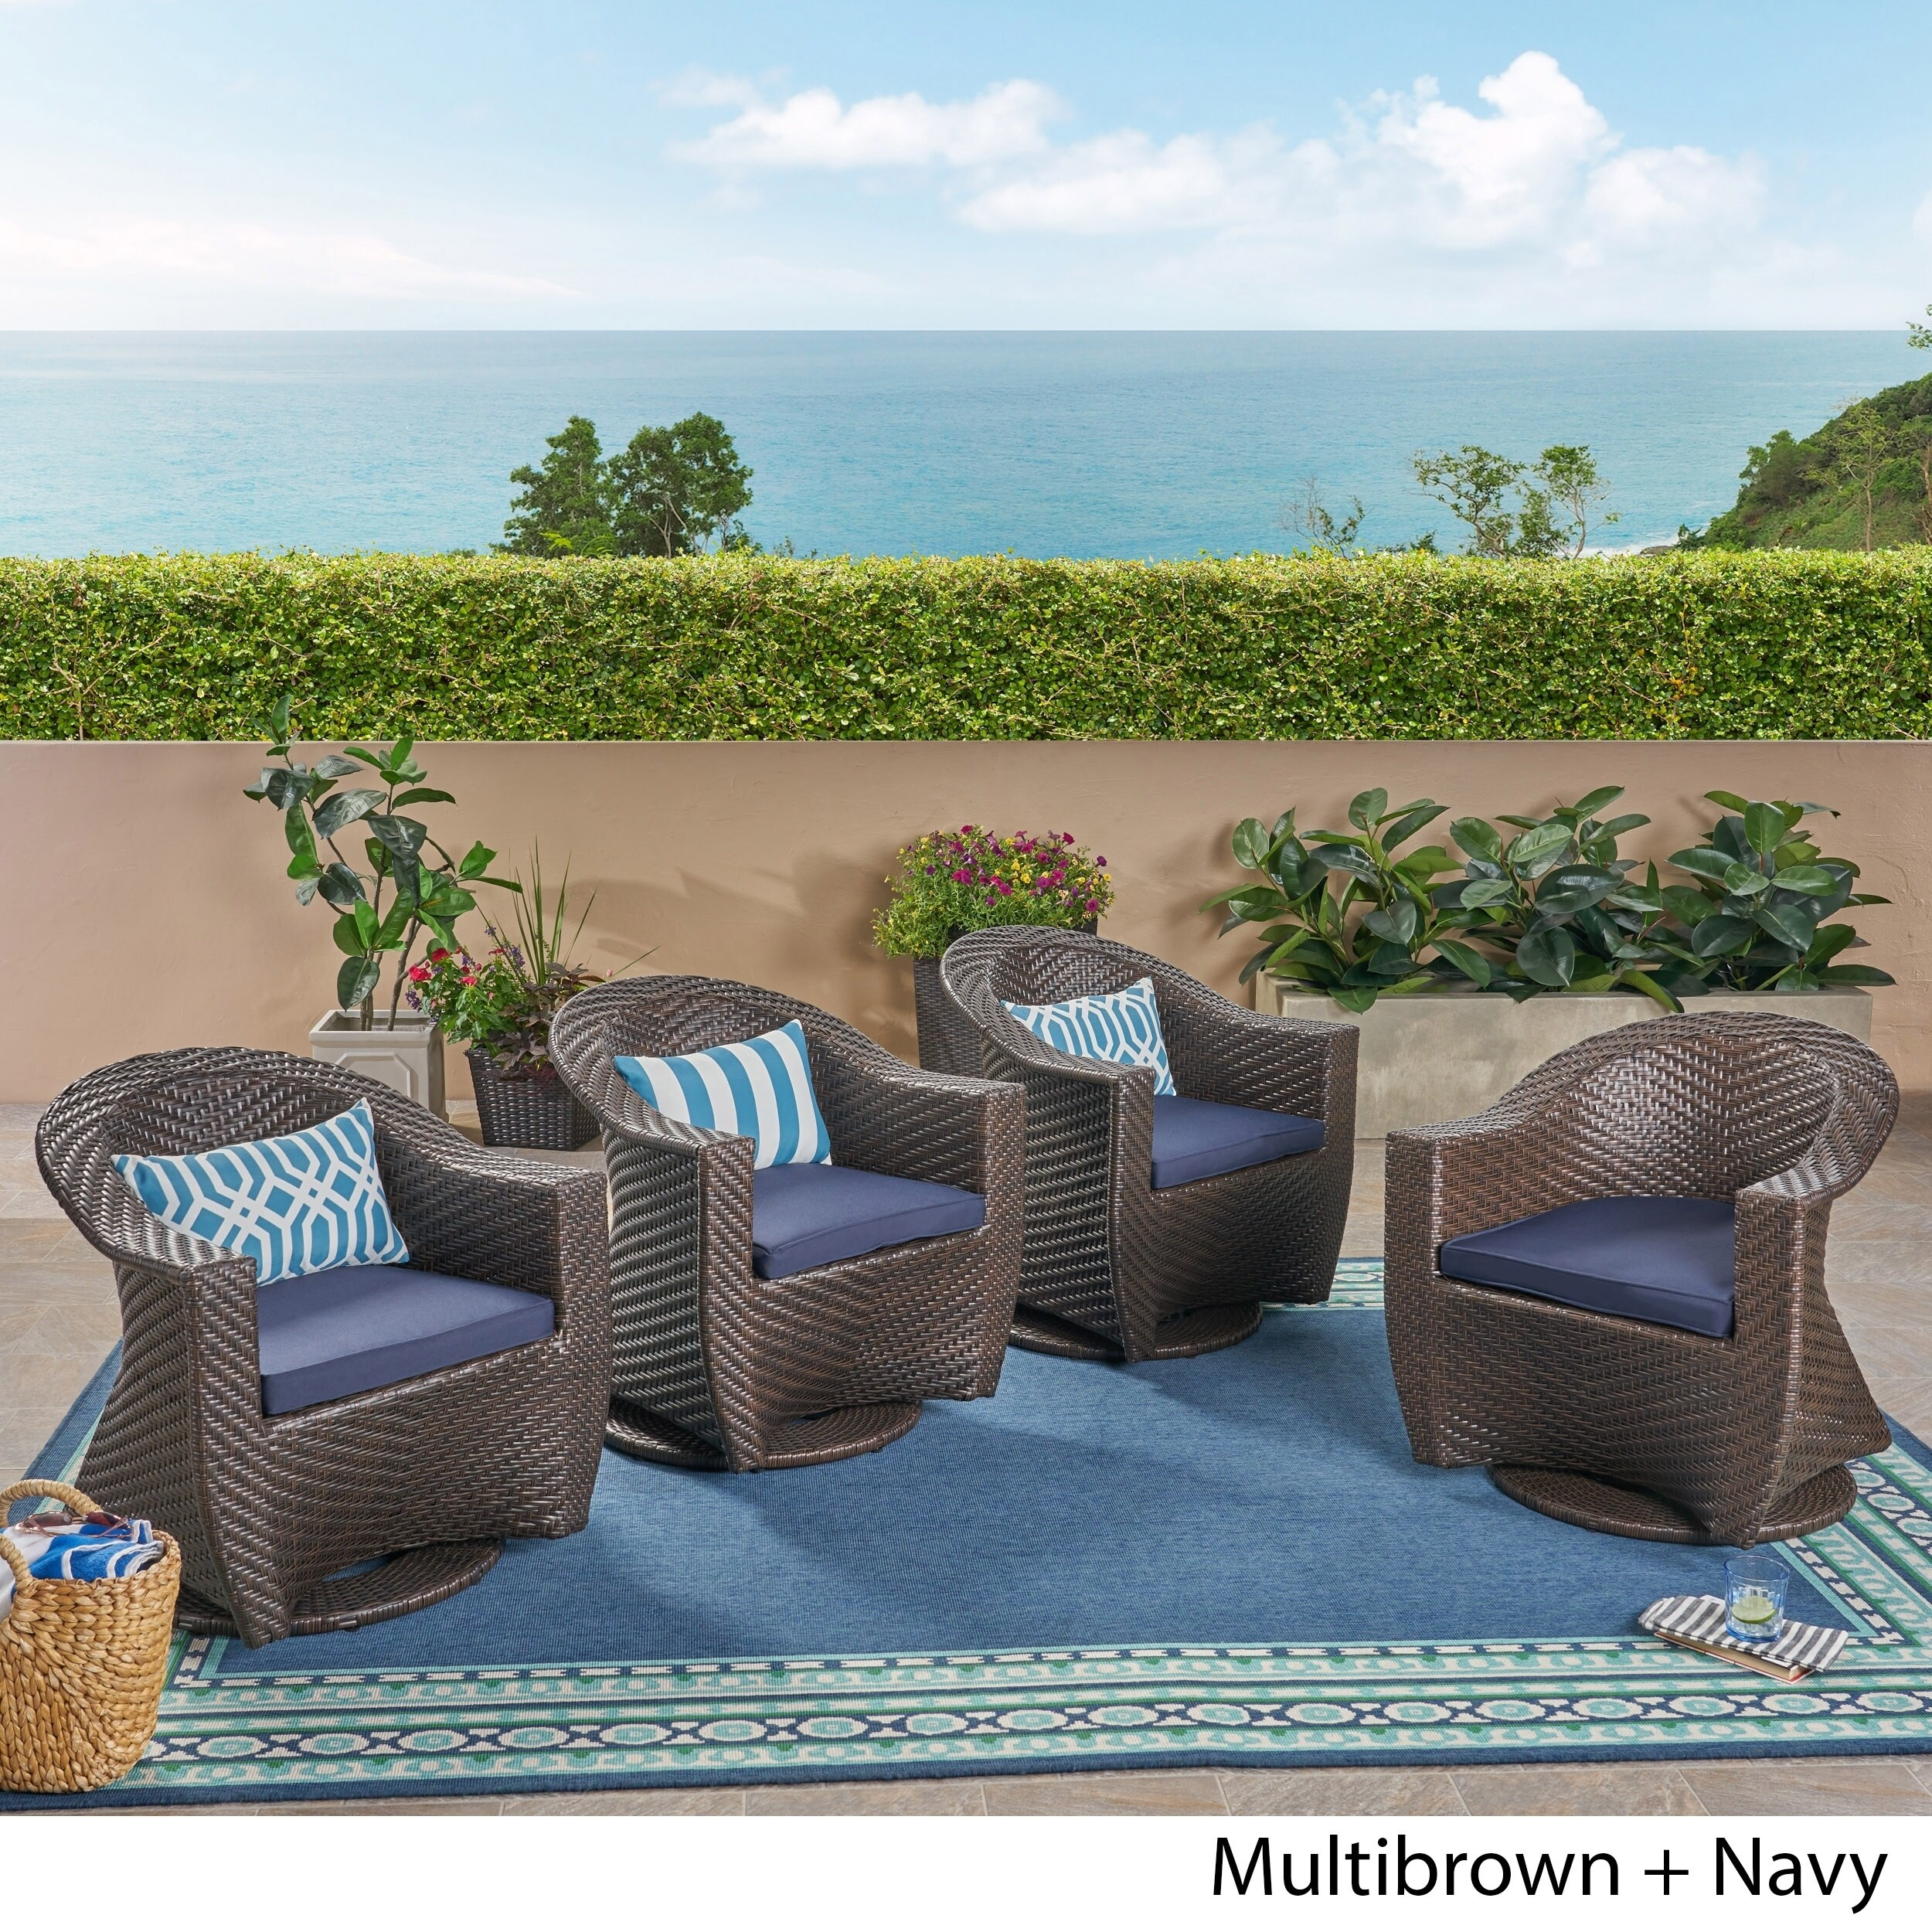 Groovy Larchmont Outdoor Wicker Swivel Chairs With Cushions Set Of 4 By Christopher Knight Home Evergreenethics Interior Chair Design Evergreenethicsorg